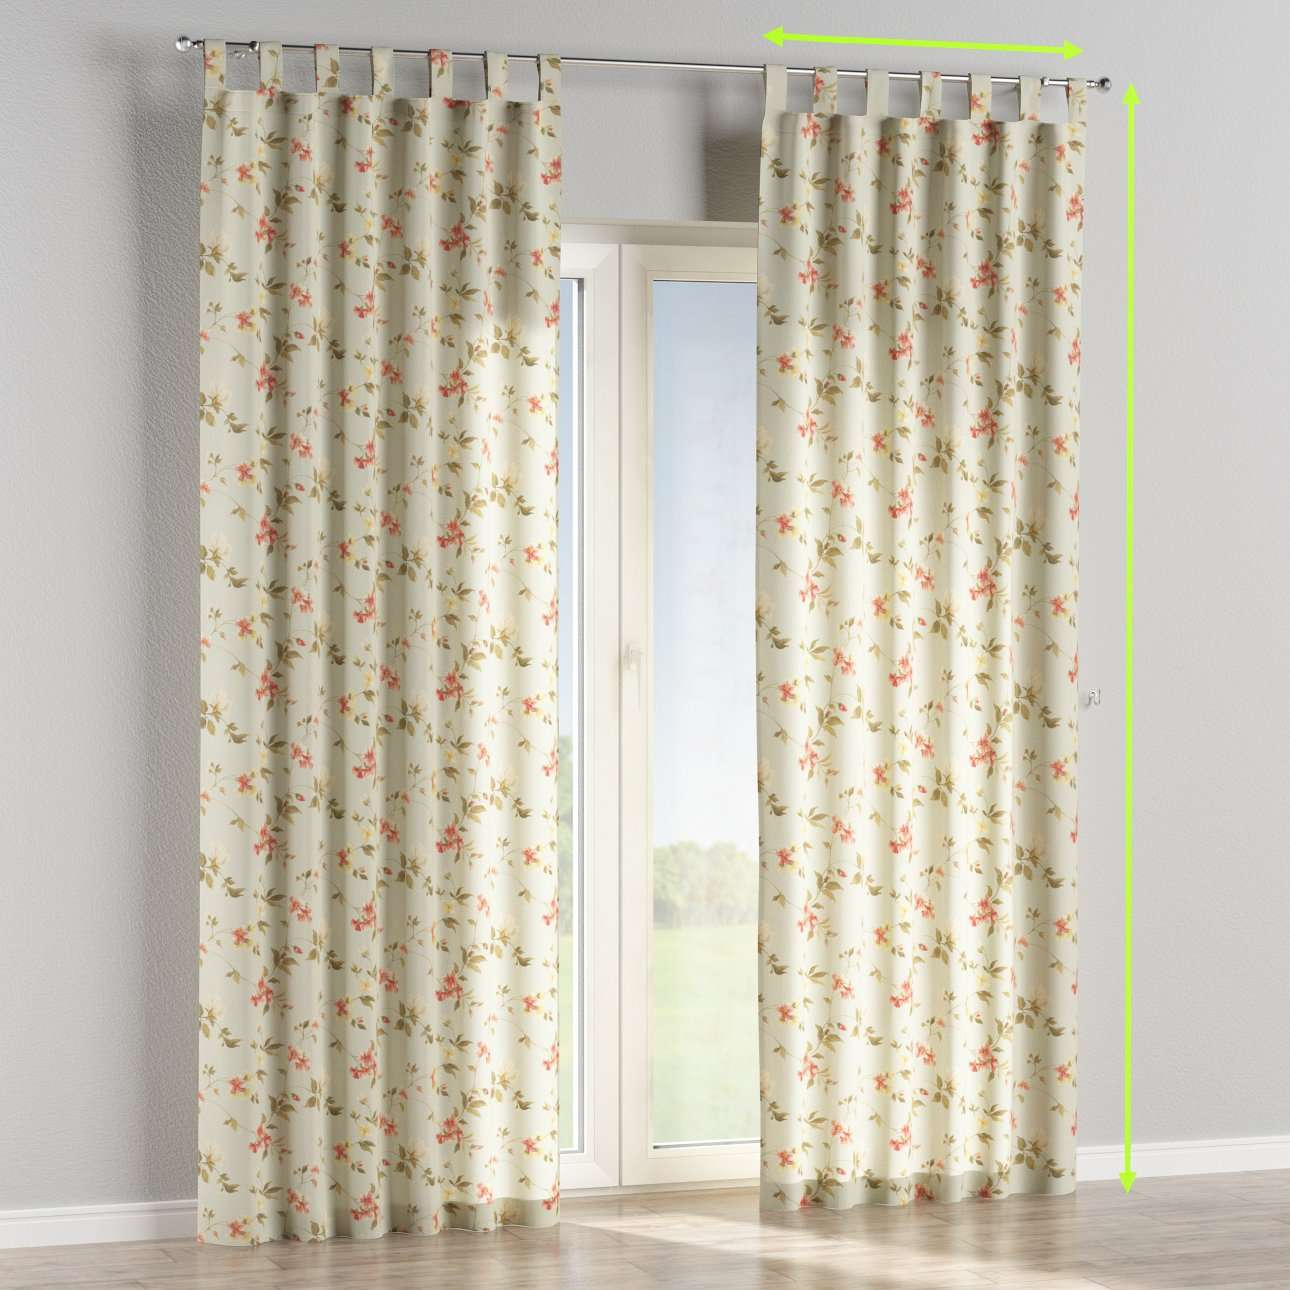 Tab top lined curtains in collection Londres, fabric: 124-65